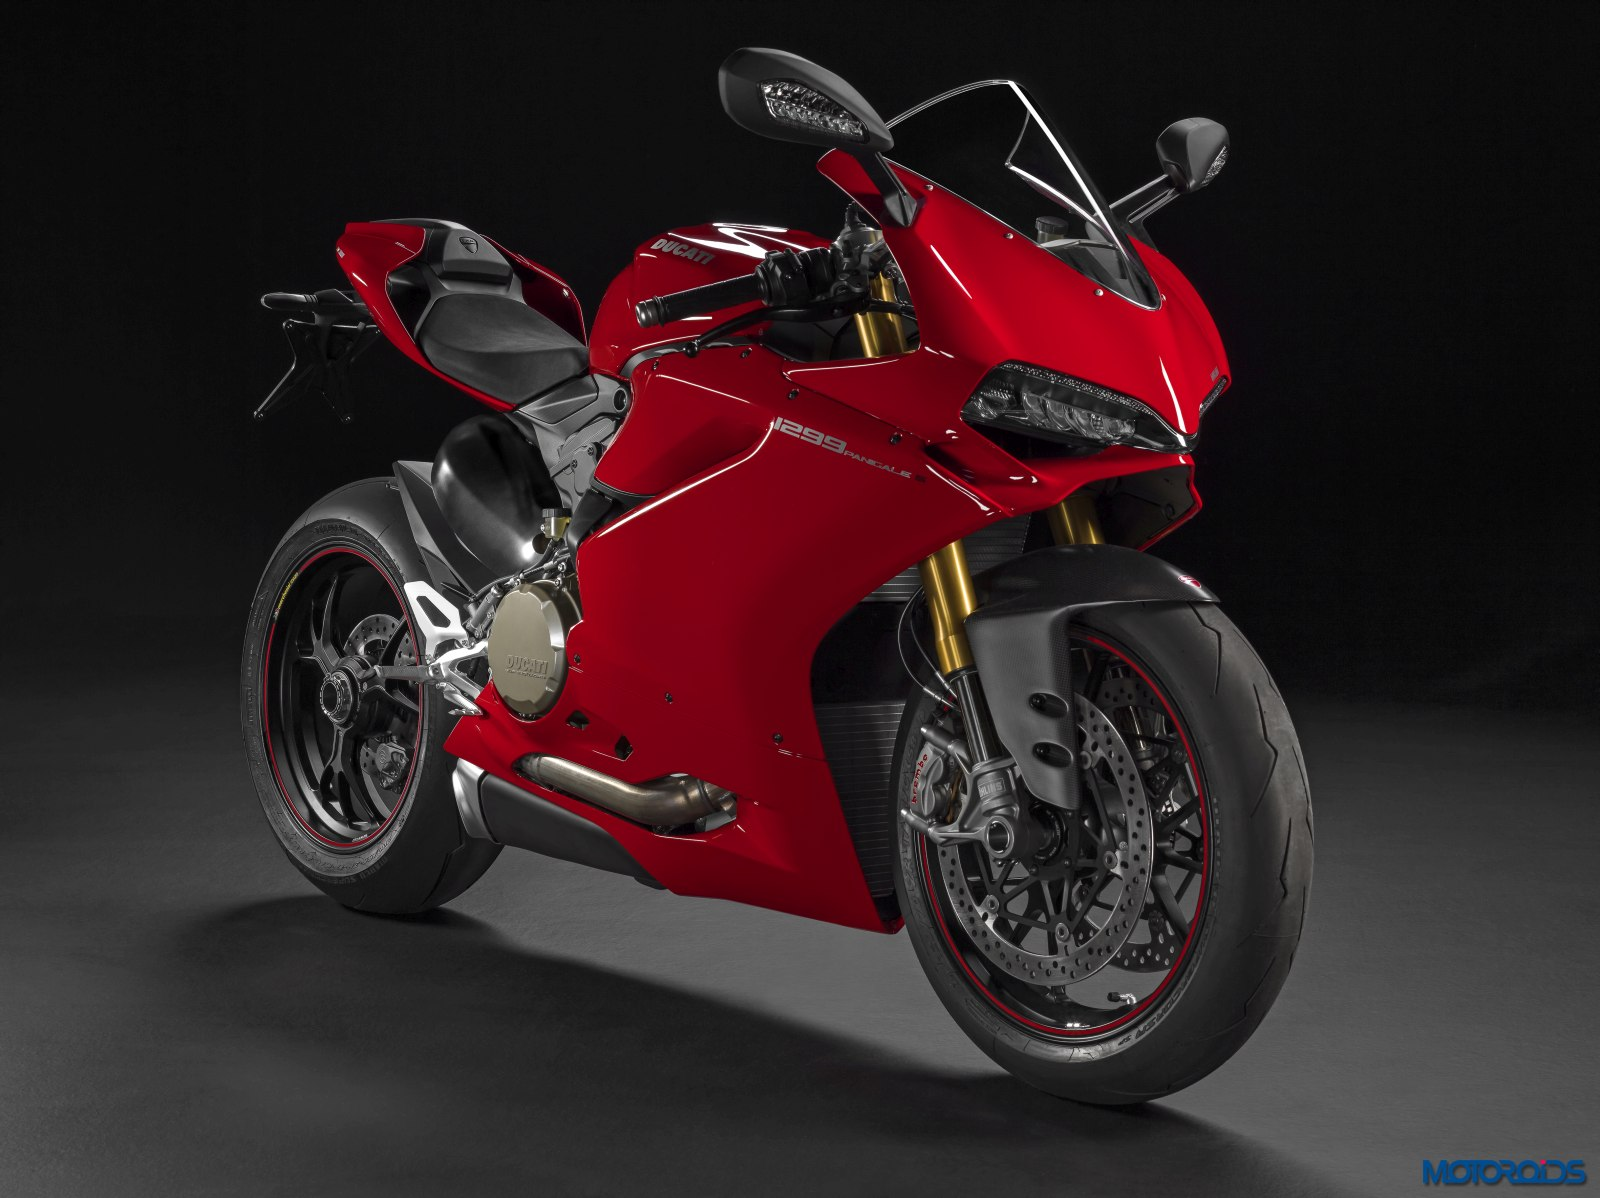 12-03 1299 PANIGALE S